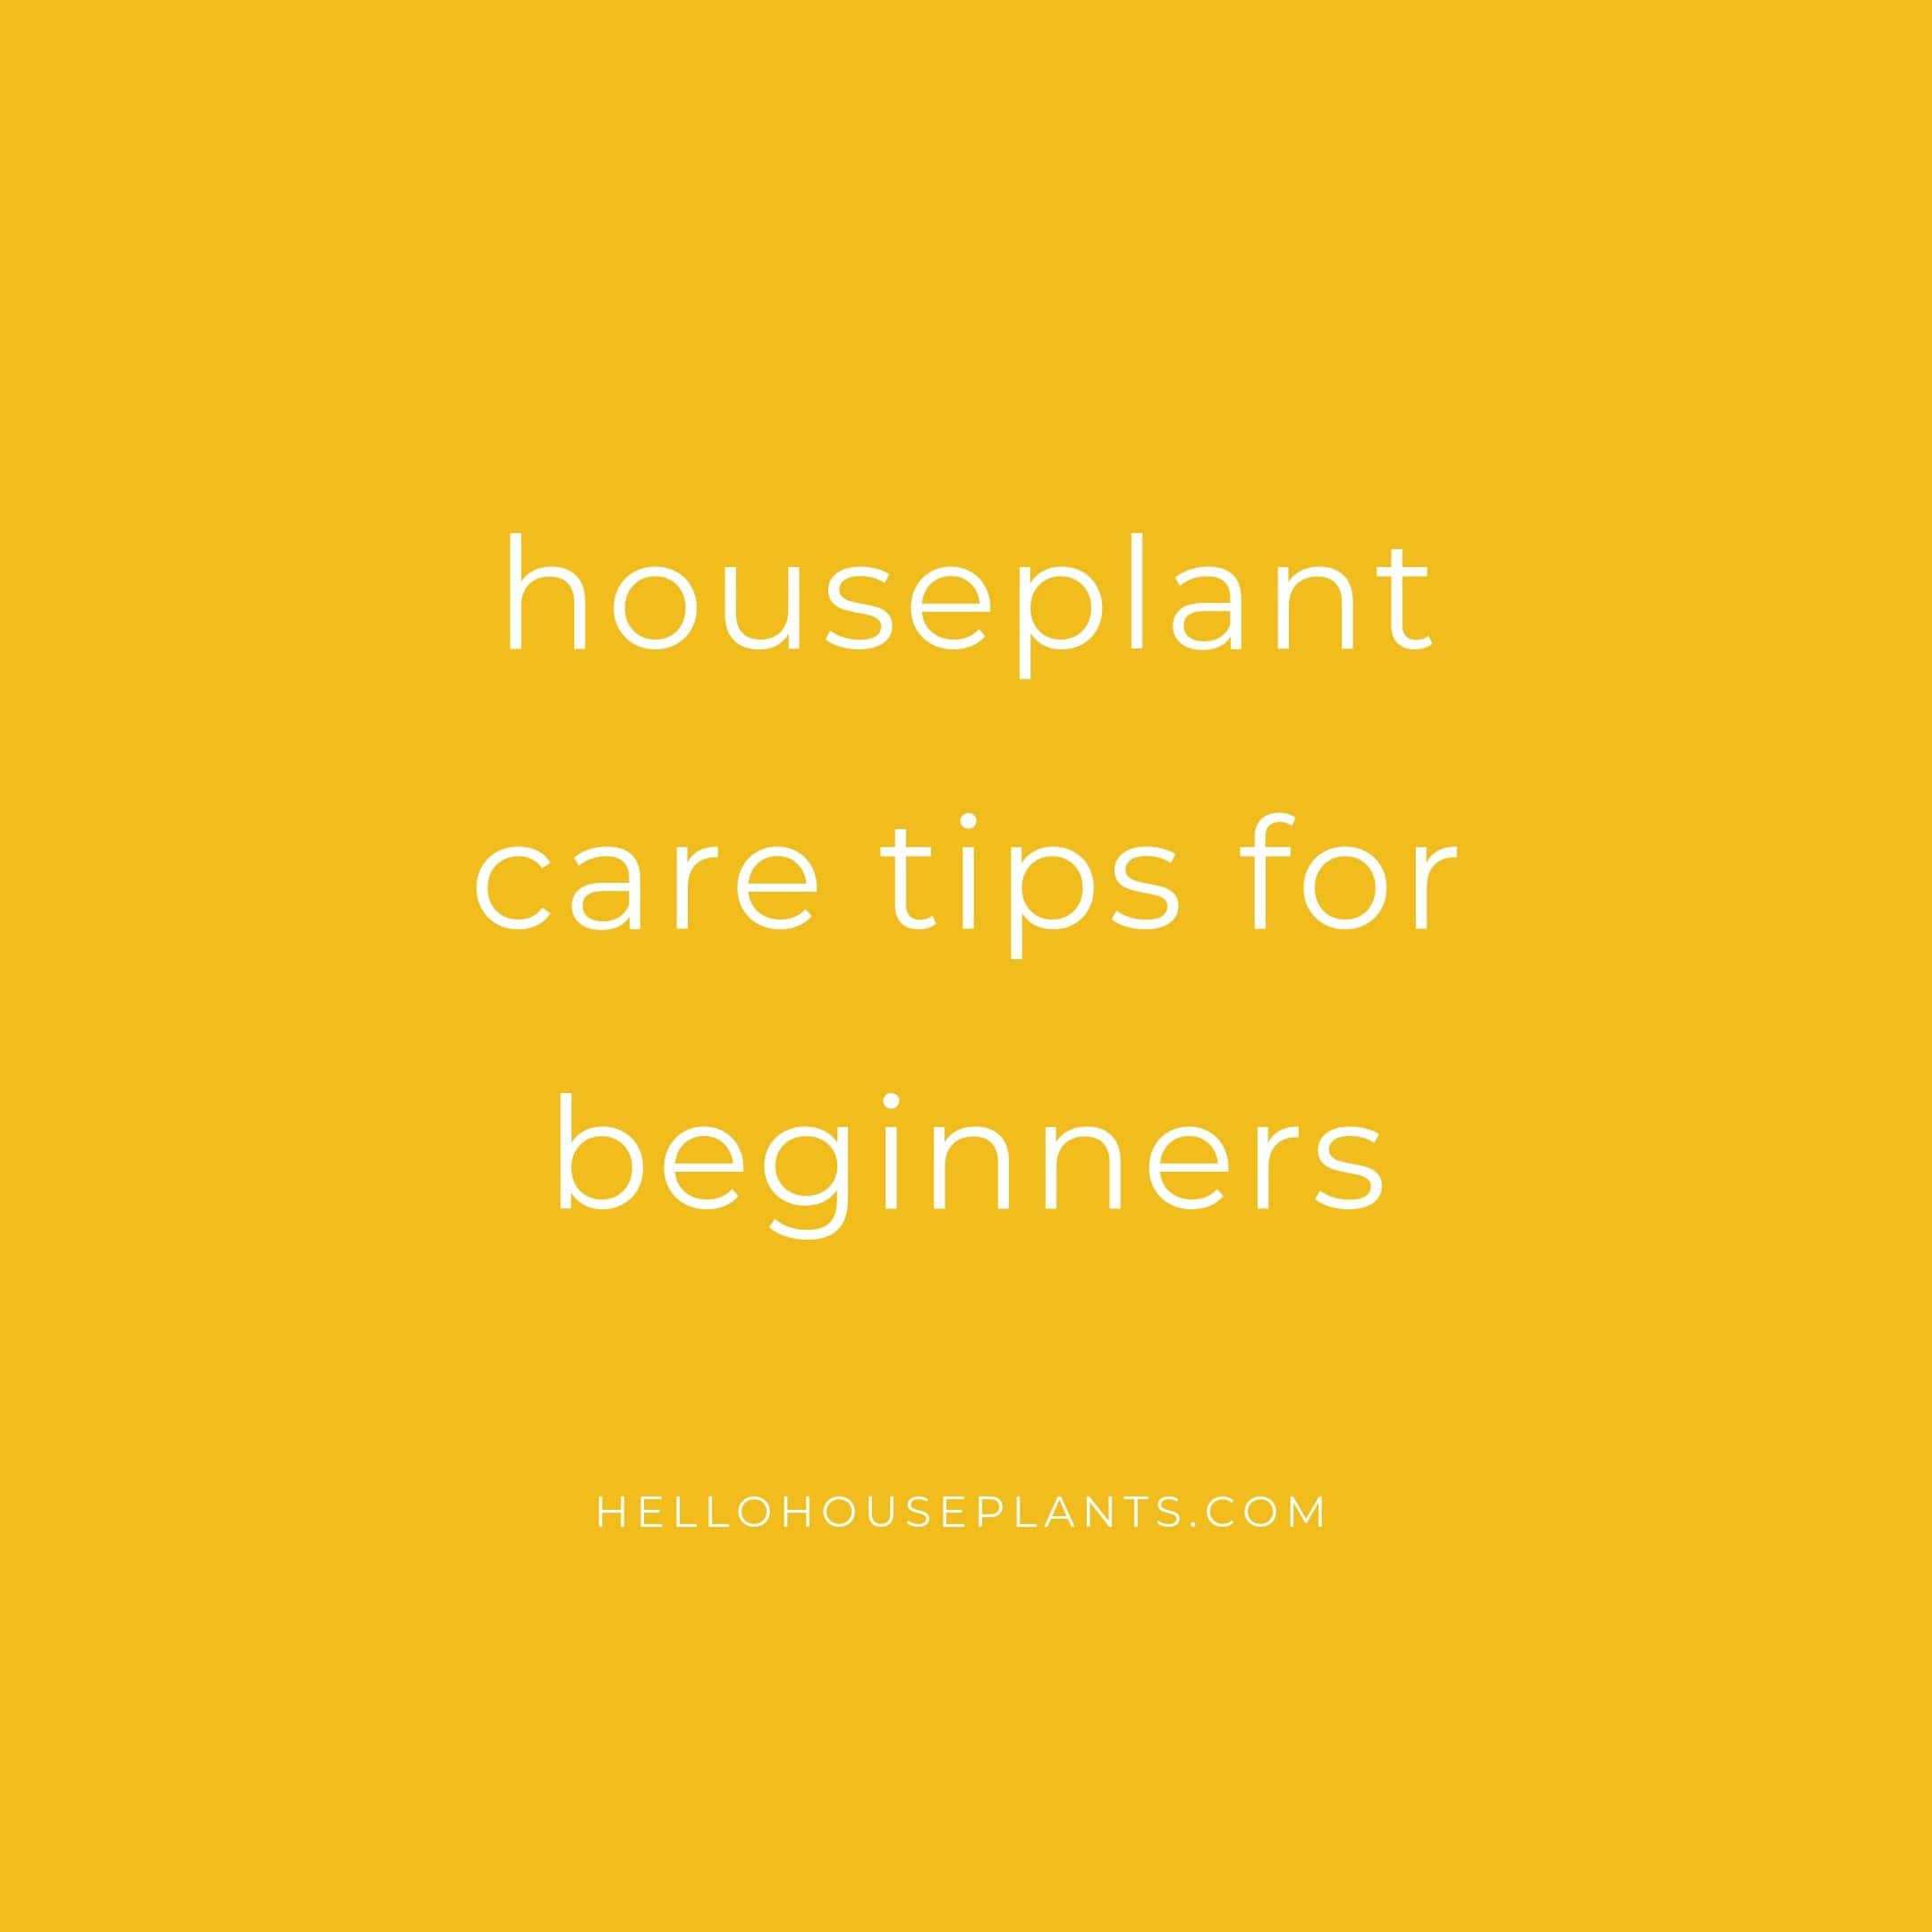 Houseplant Care Tips for Beginners